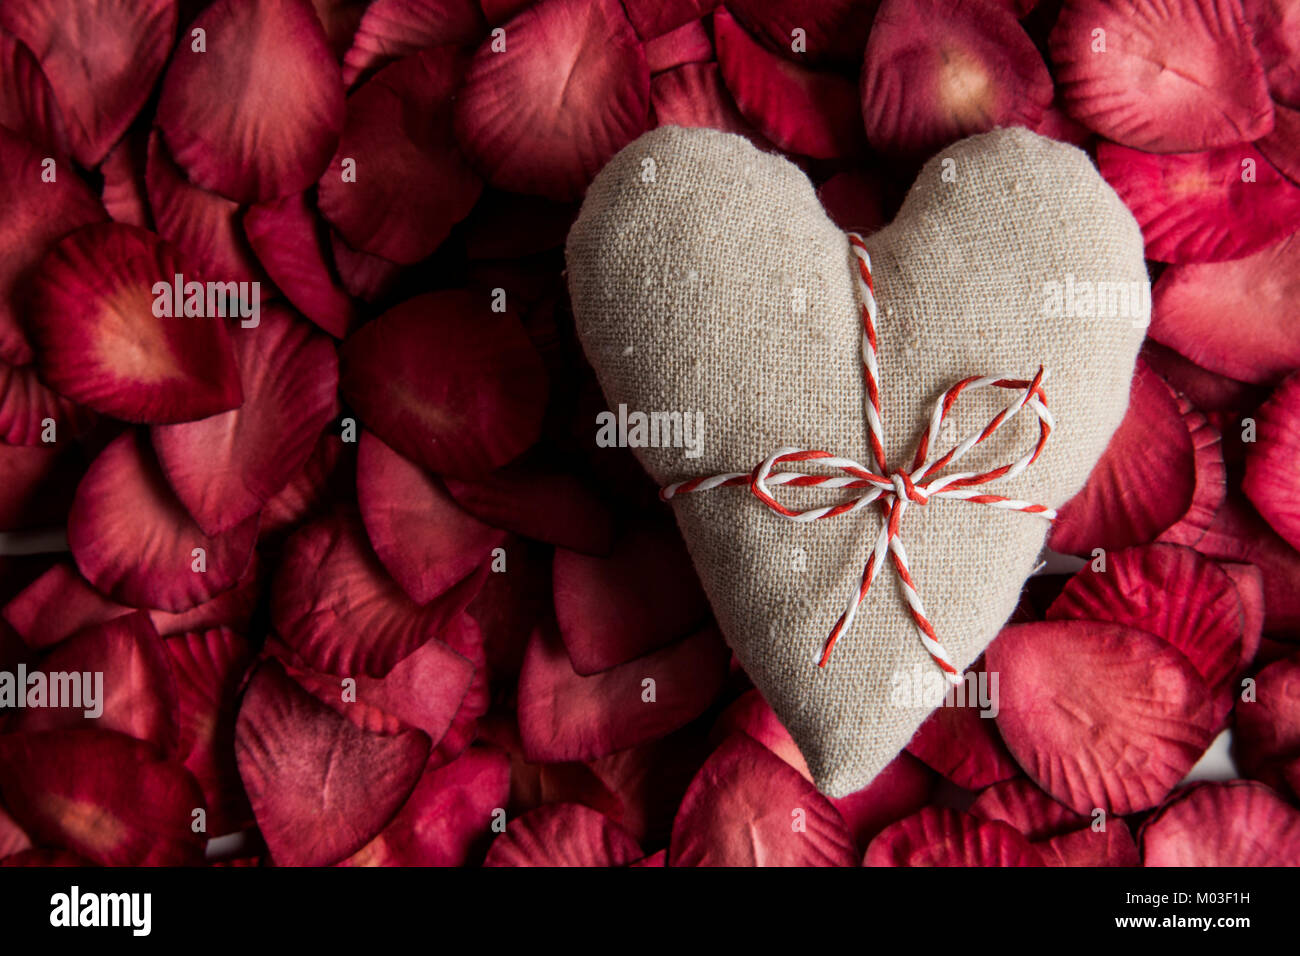 St Valentines day love heart and rose petals - Stock Image